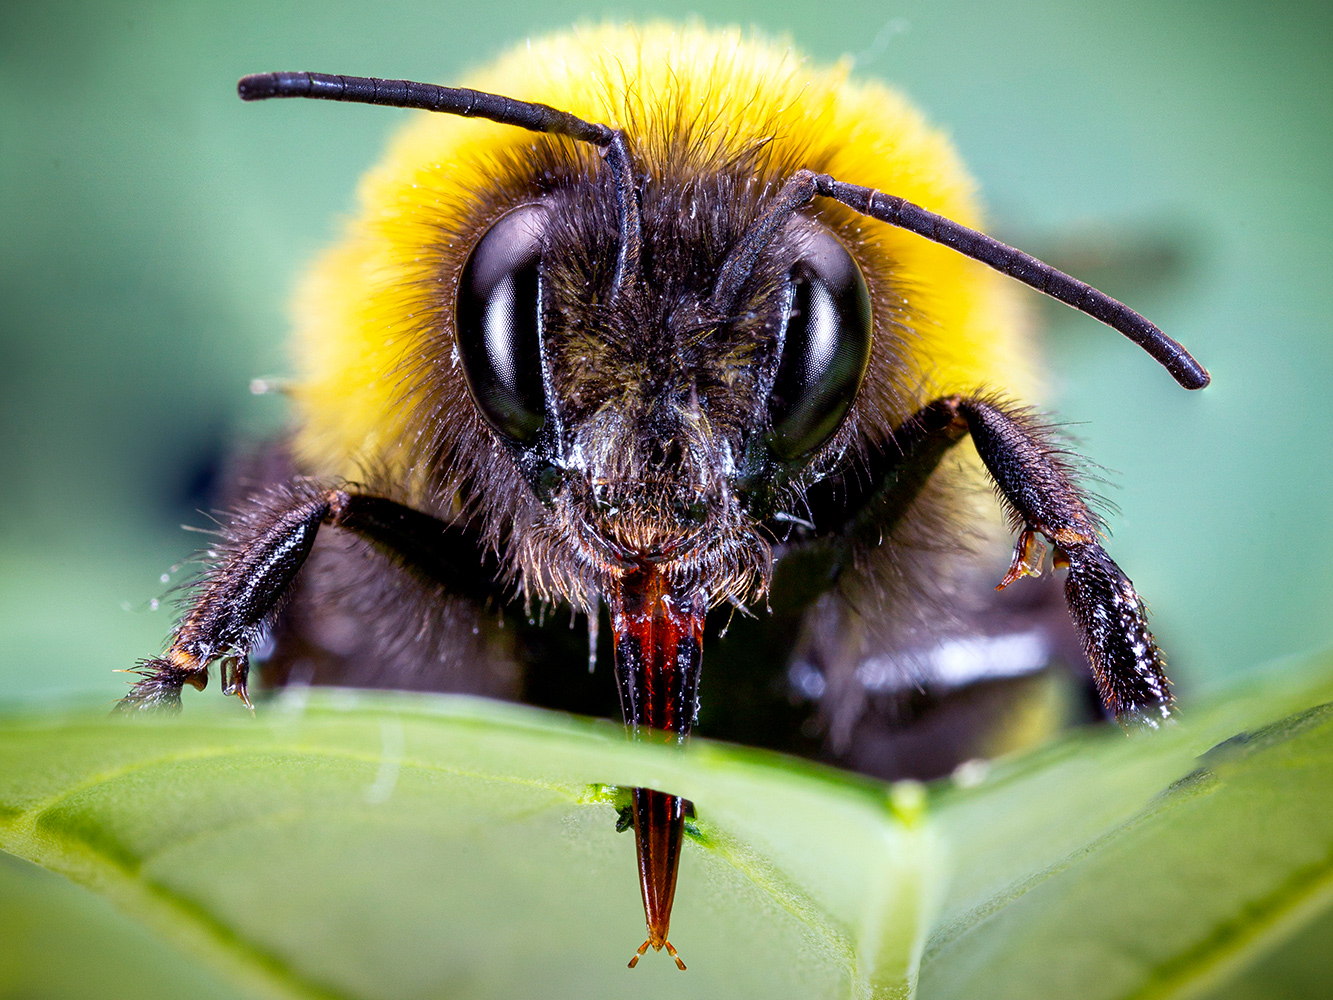 When plant pollen scarce, bumblebees biting leaves causes flowers to bloom early